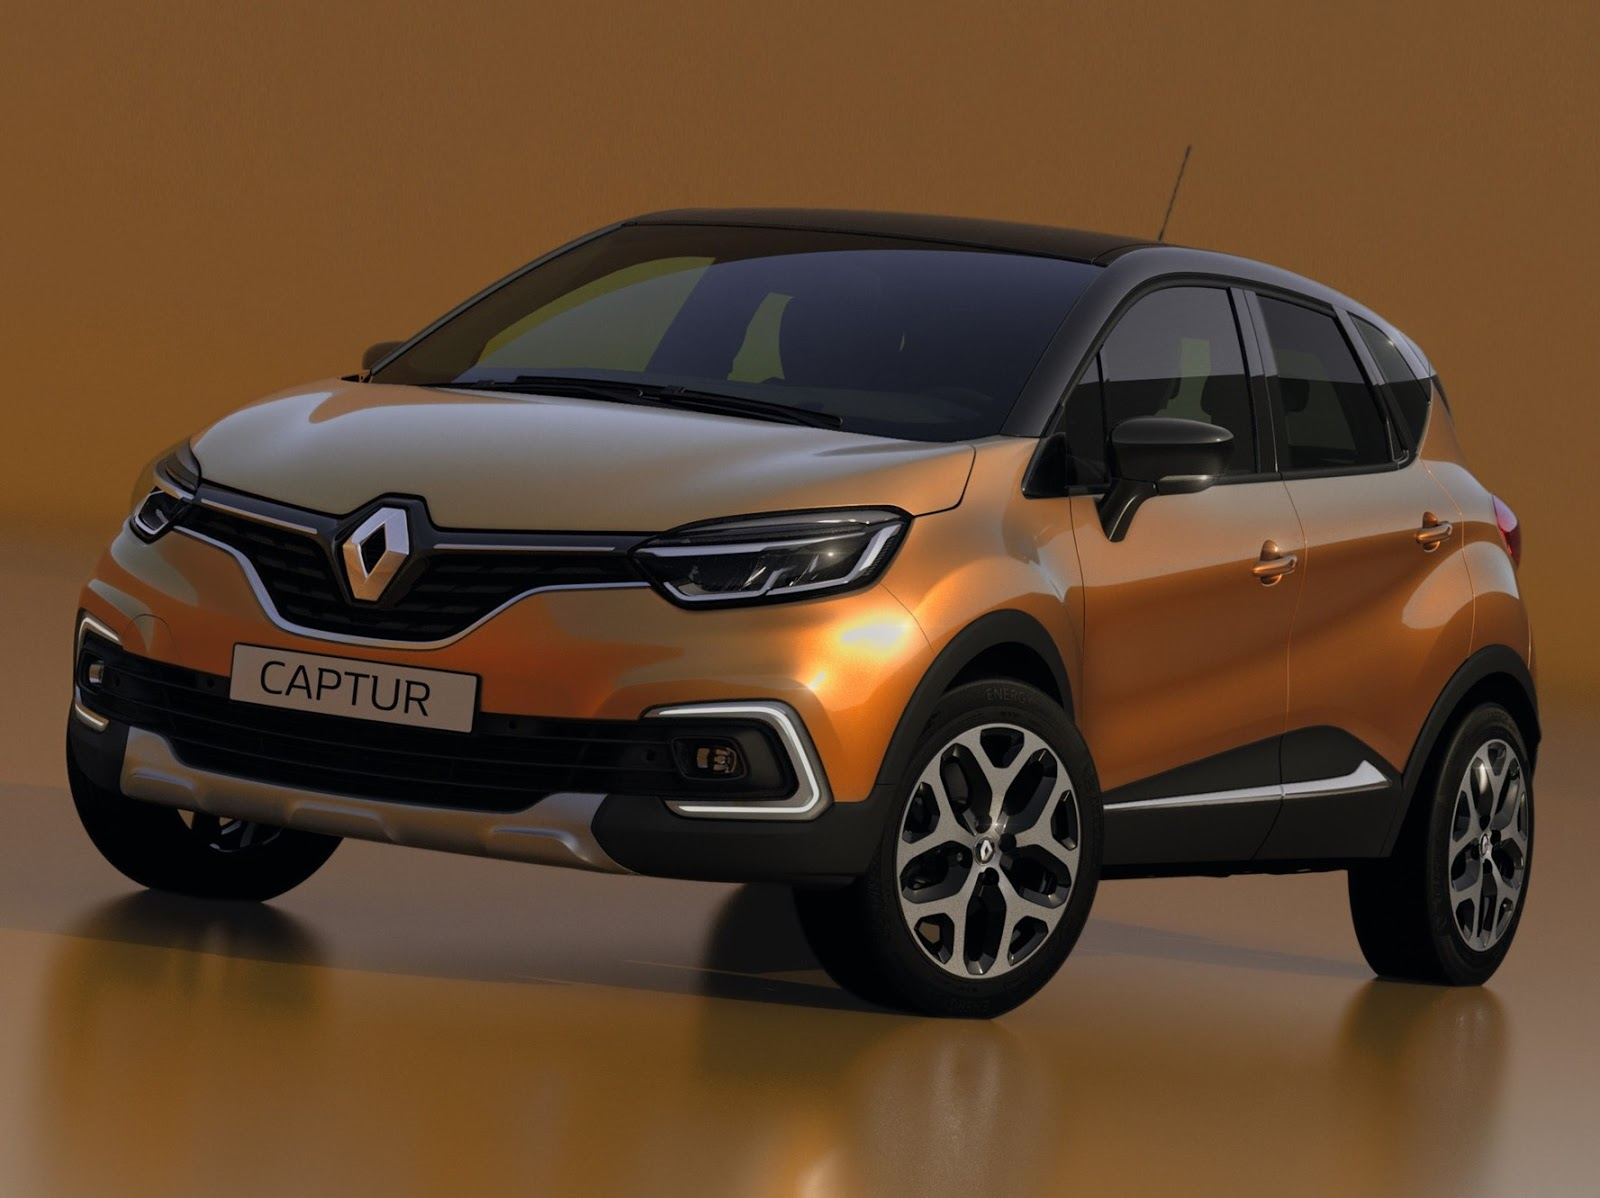 renault captur 2018 com facelift revelado na europa car blog br. Black Bedroom Furniture Sets. Home Design Ideas